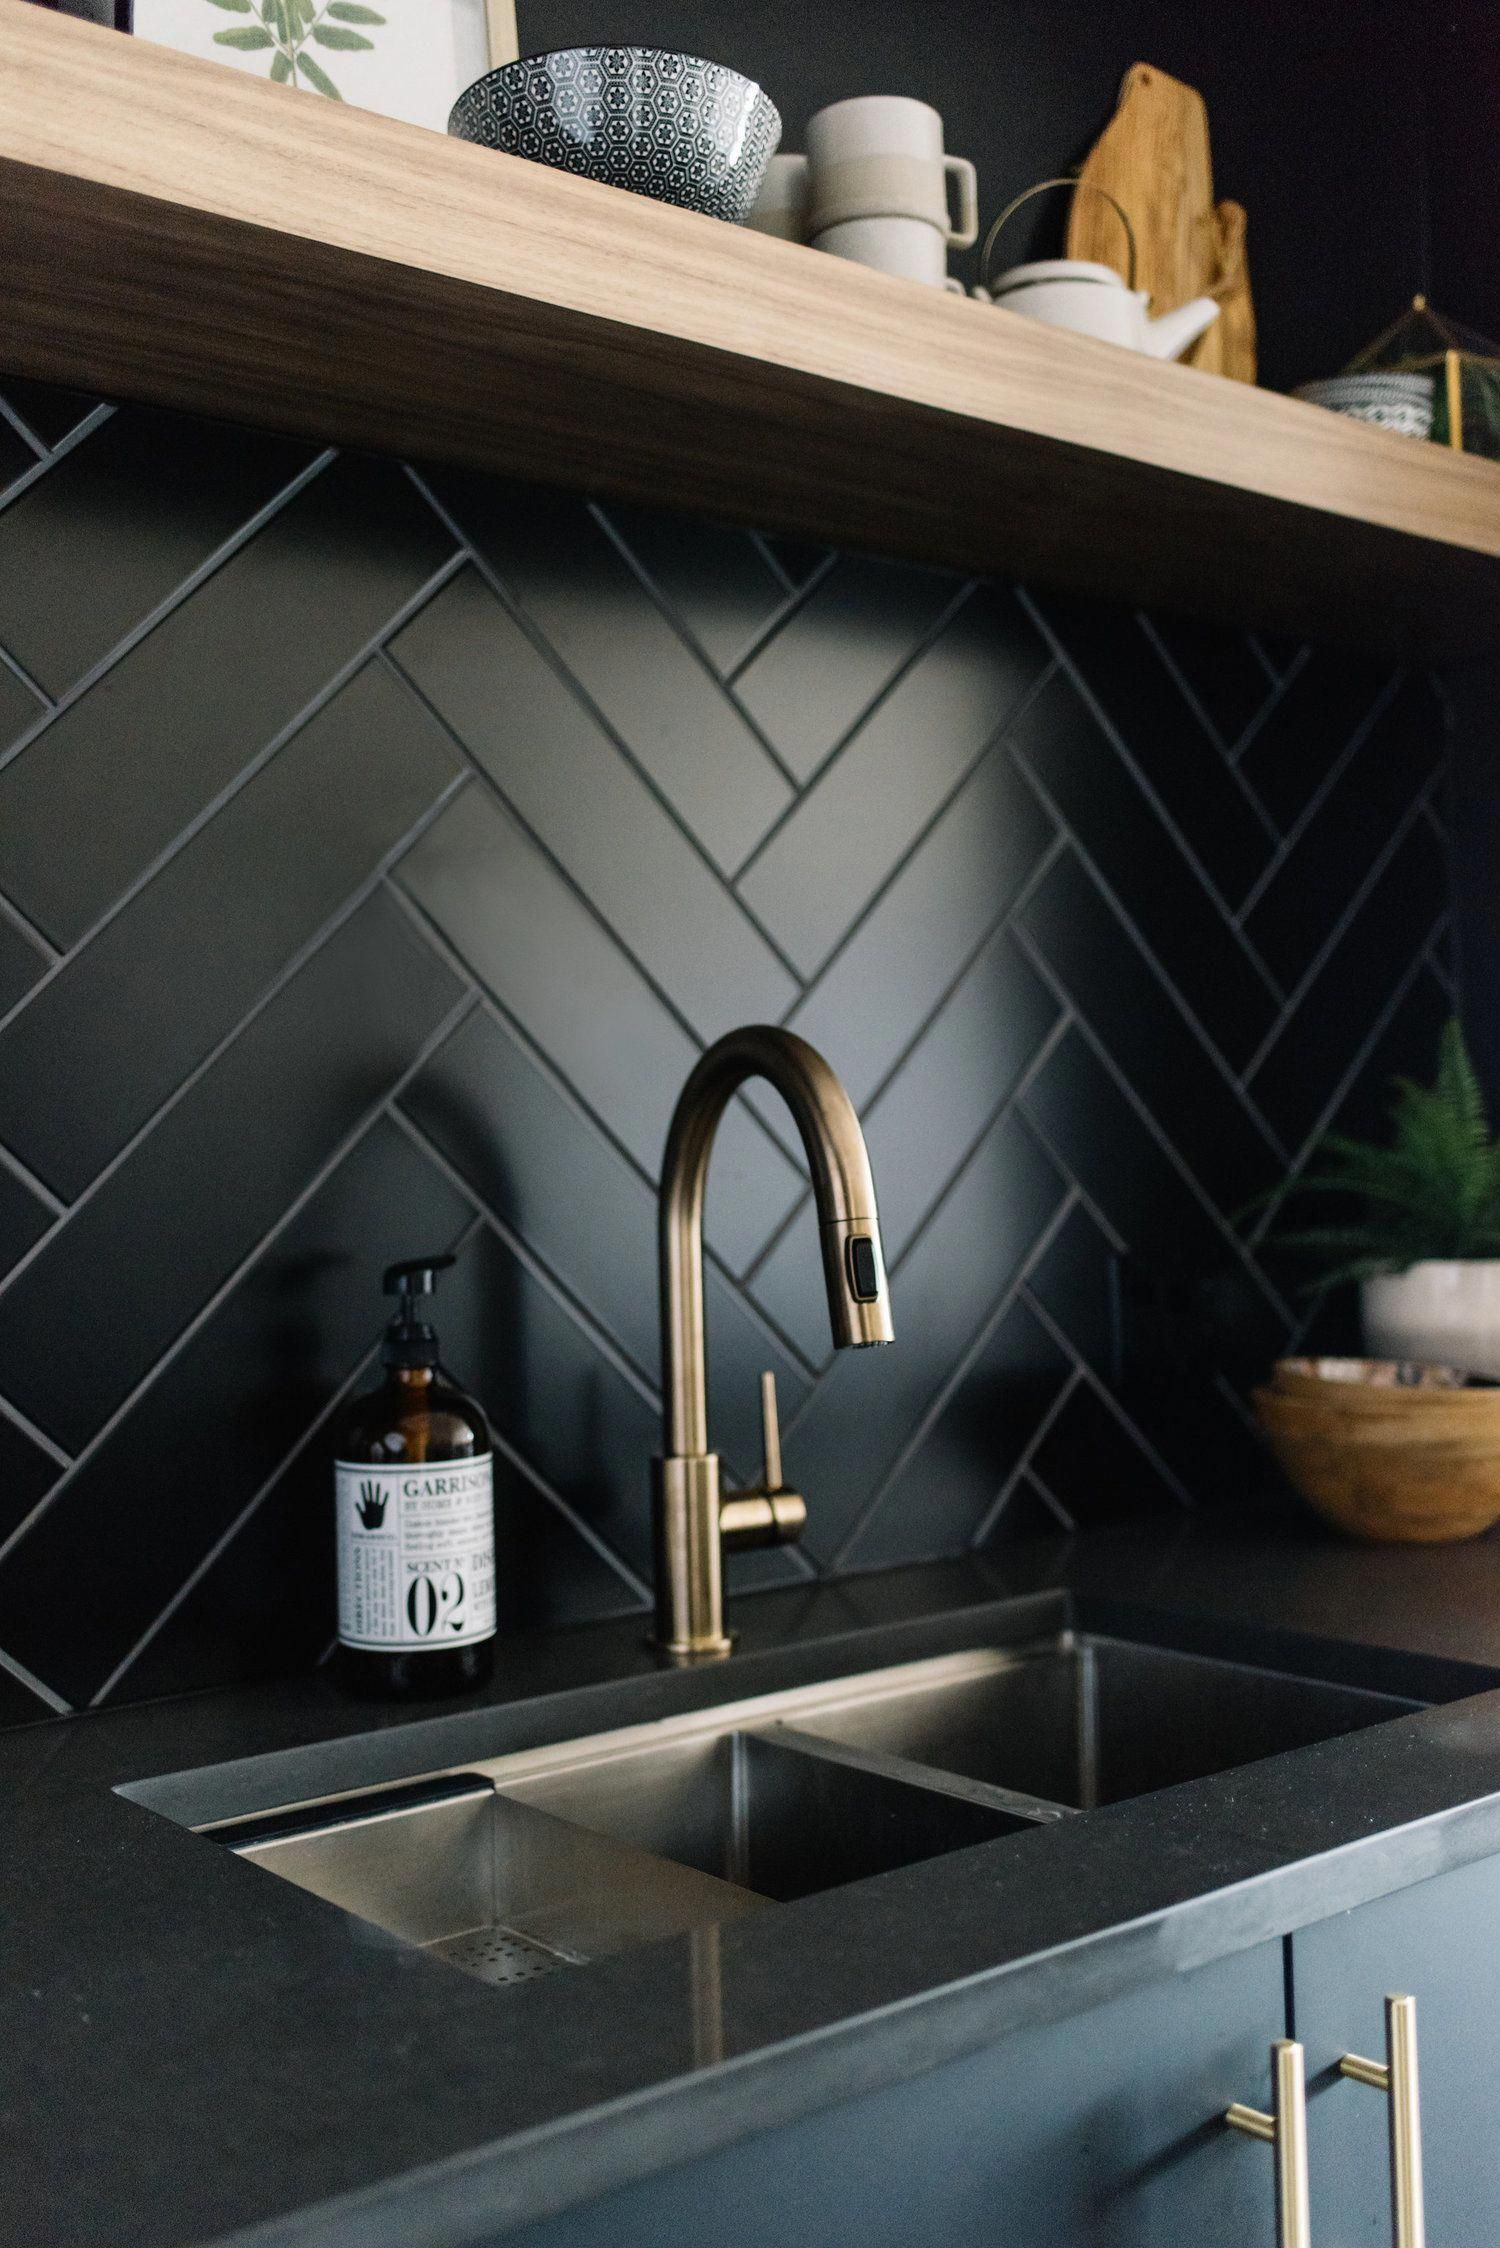 A Backsplash Is Used In Order To Protect The Wall From Splashes It Is Usual Kitchen Cabinets And Backsplash Interior Design Kitchen Kitchen Without Backsplash